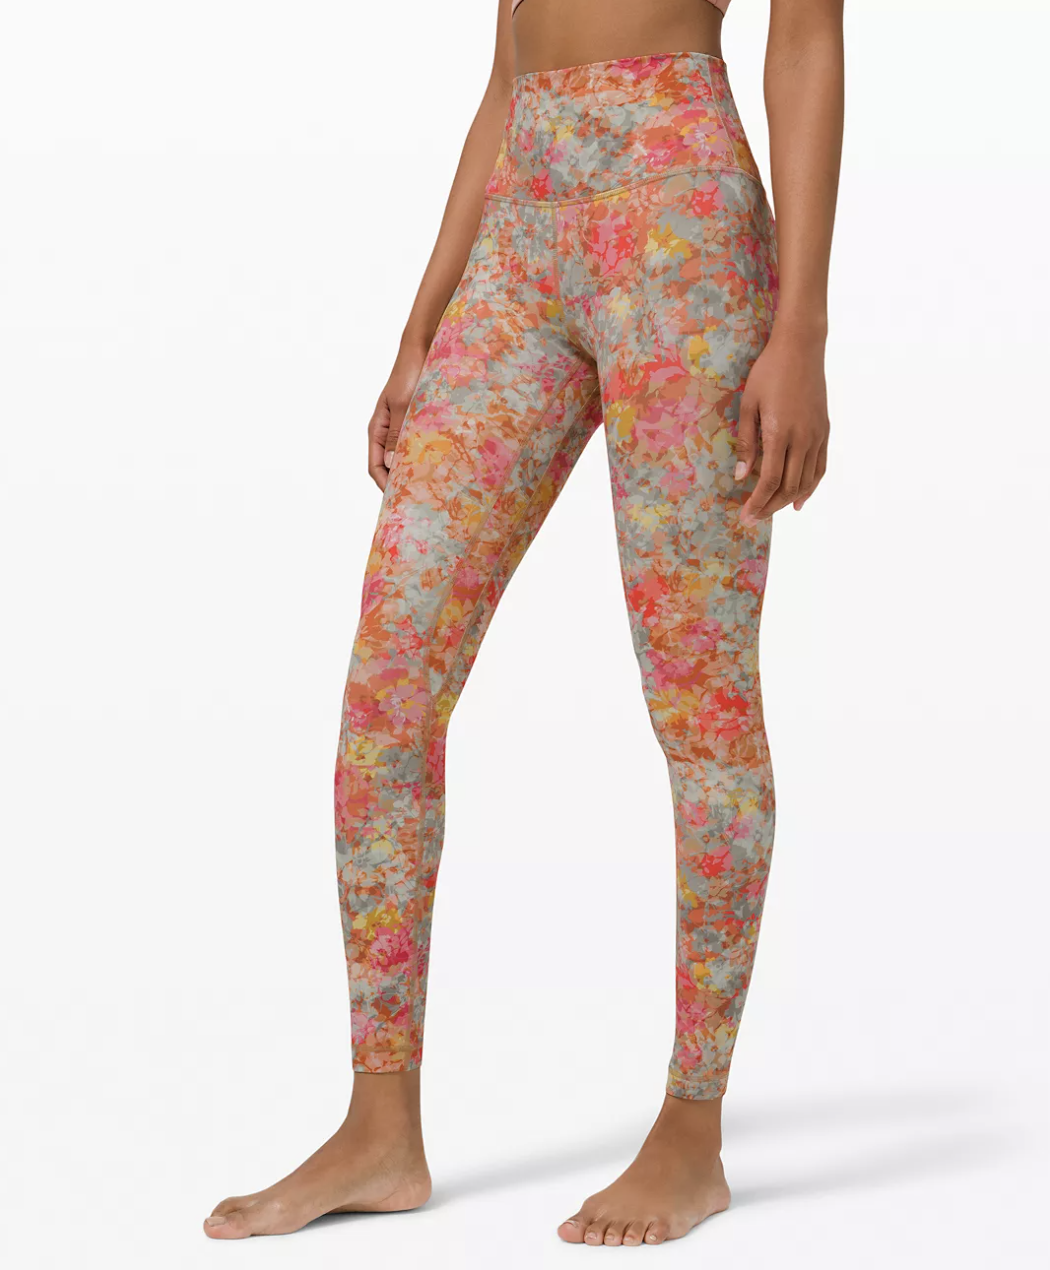 model wearing the full-length leggings in peach, yellow, and red floral print